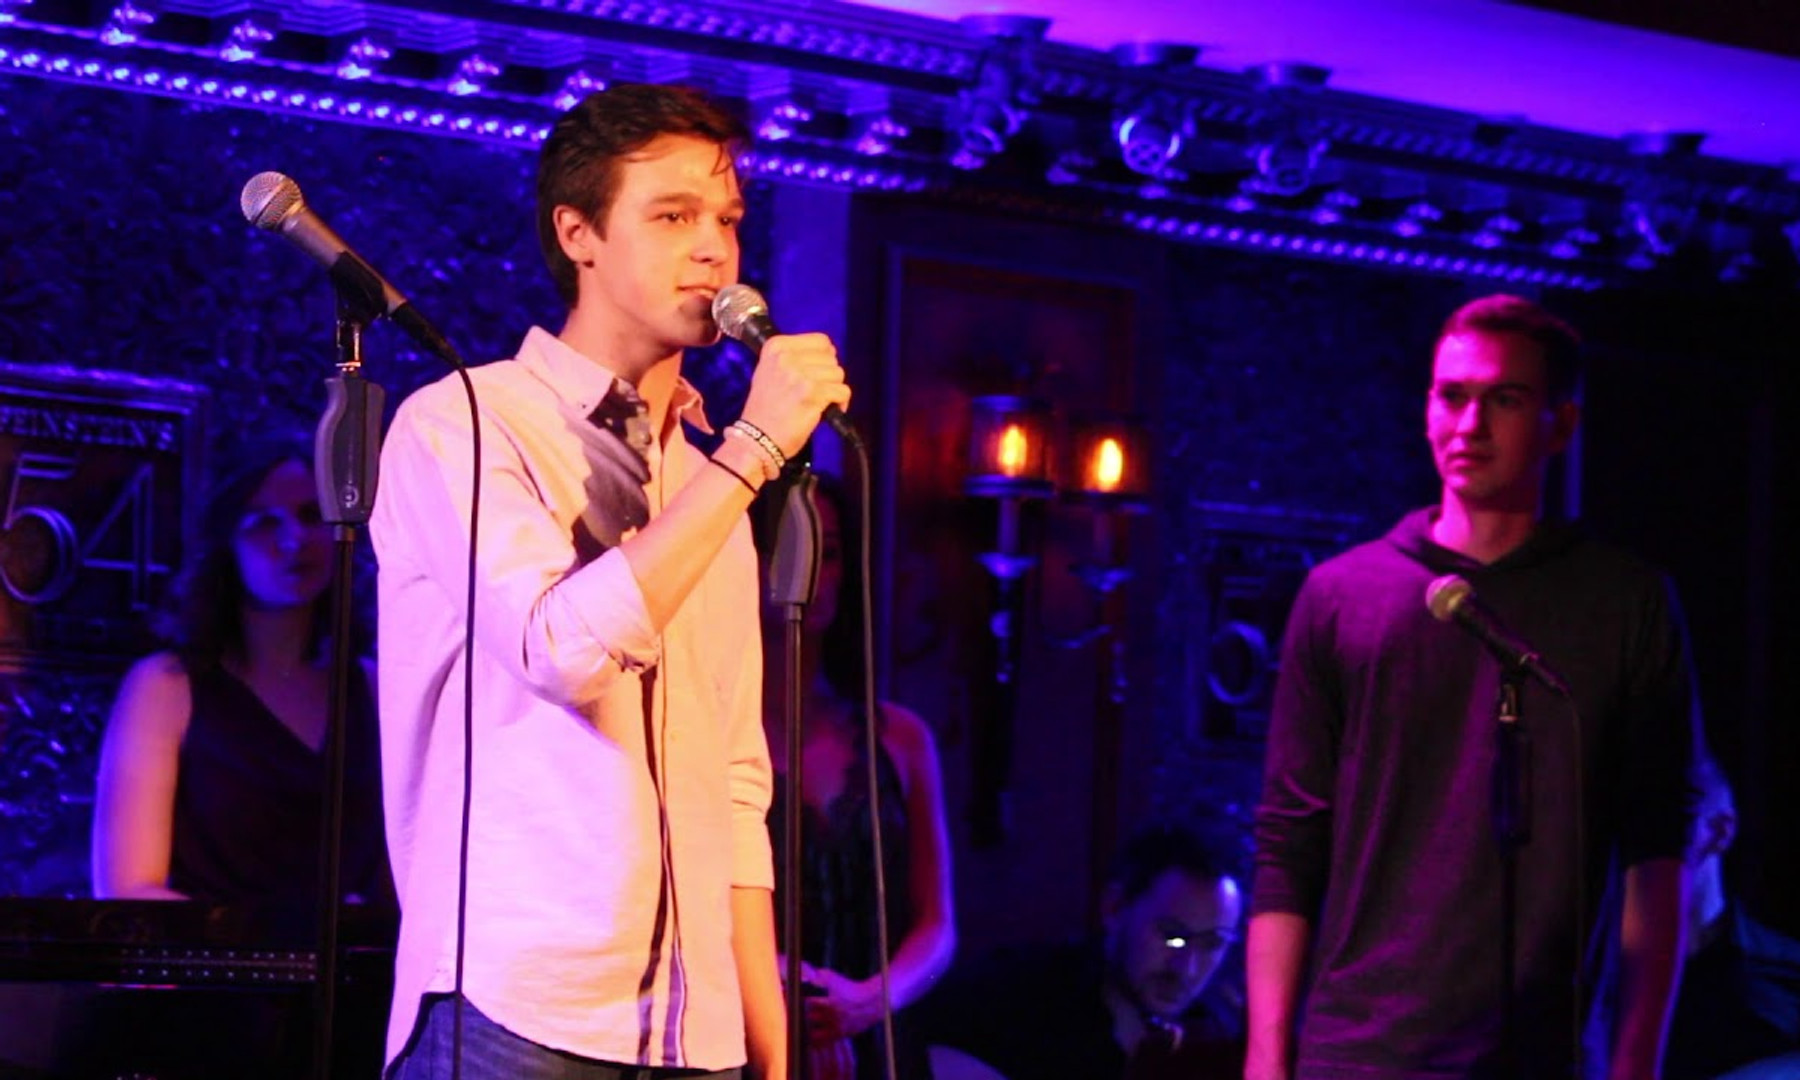 You Have No Right- The Last Day- 54 Below